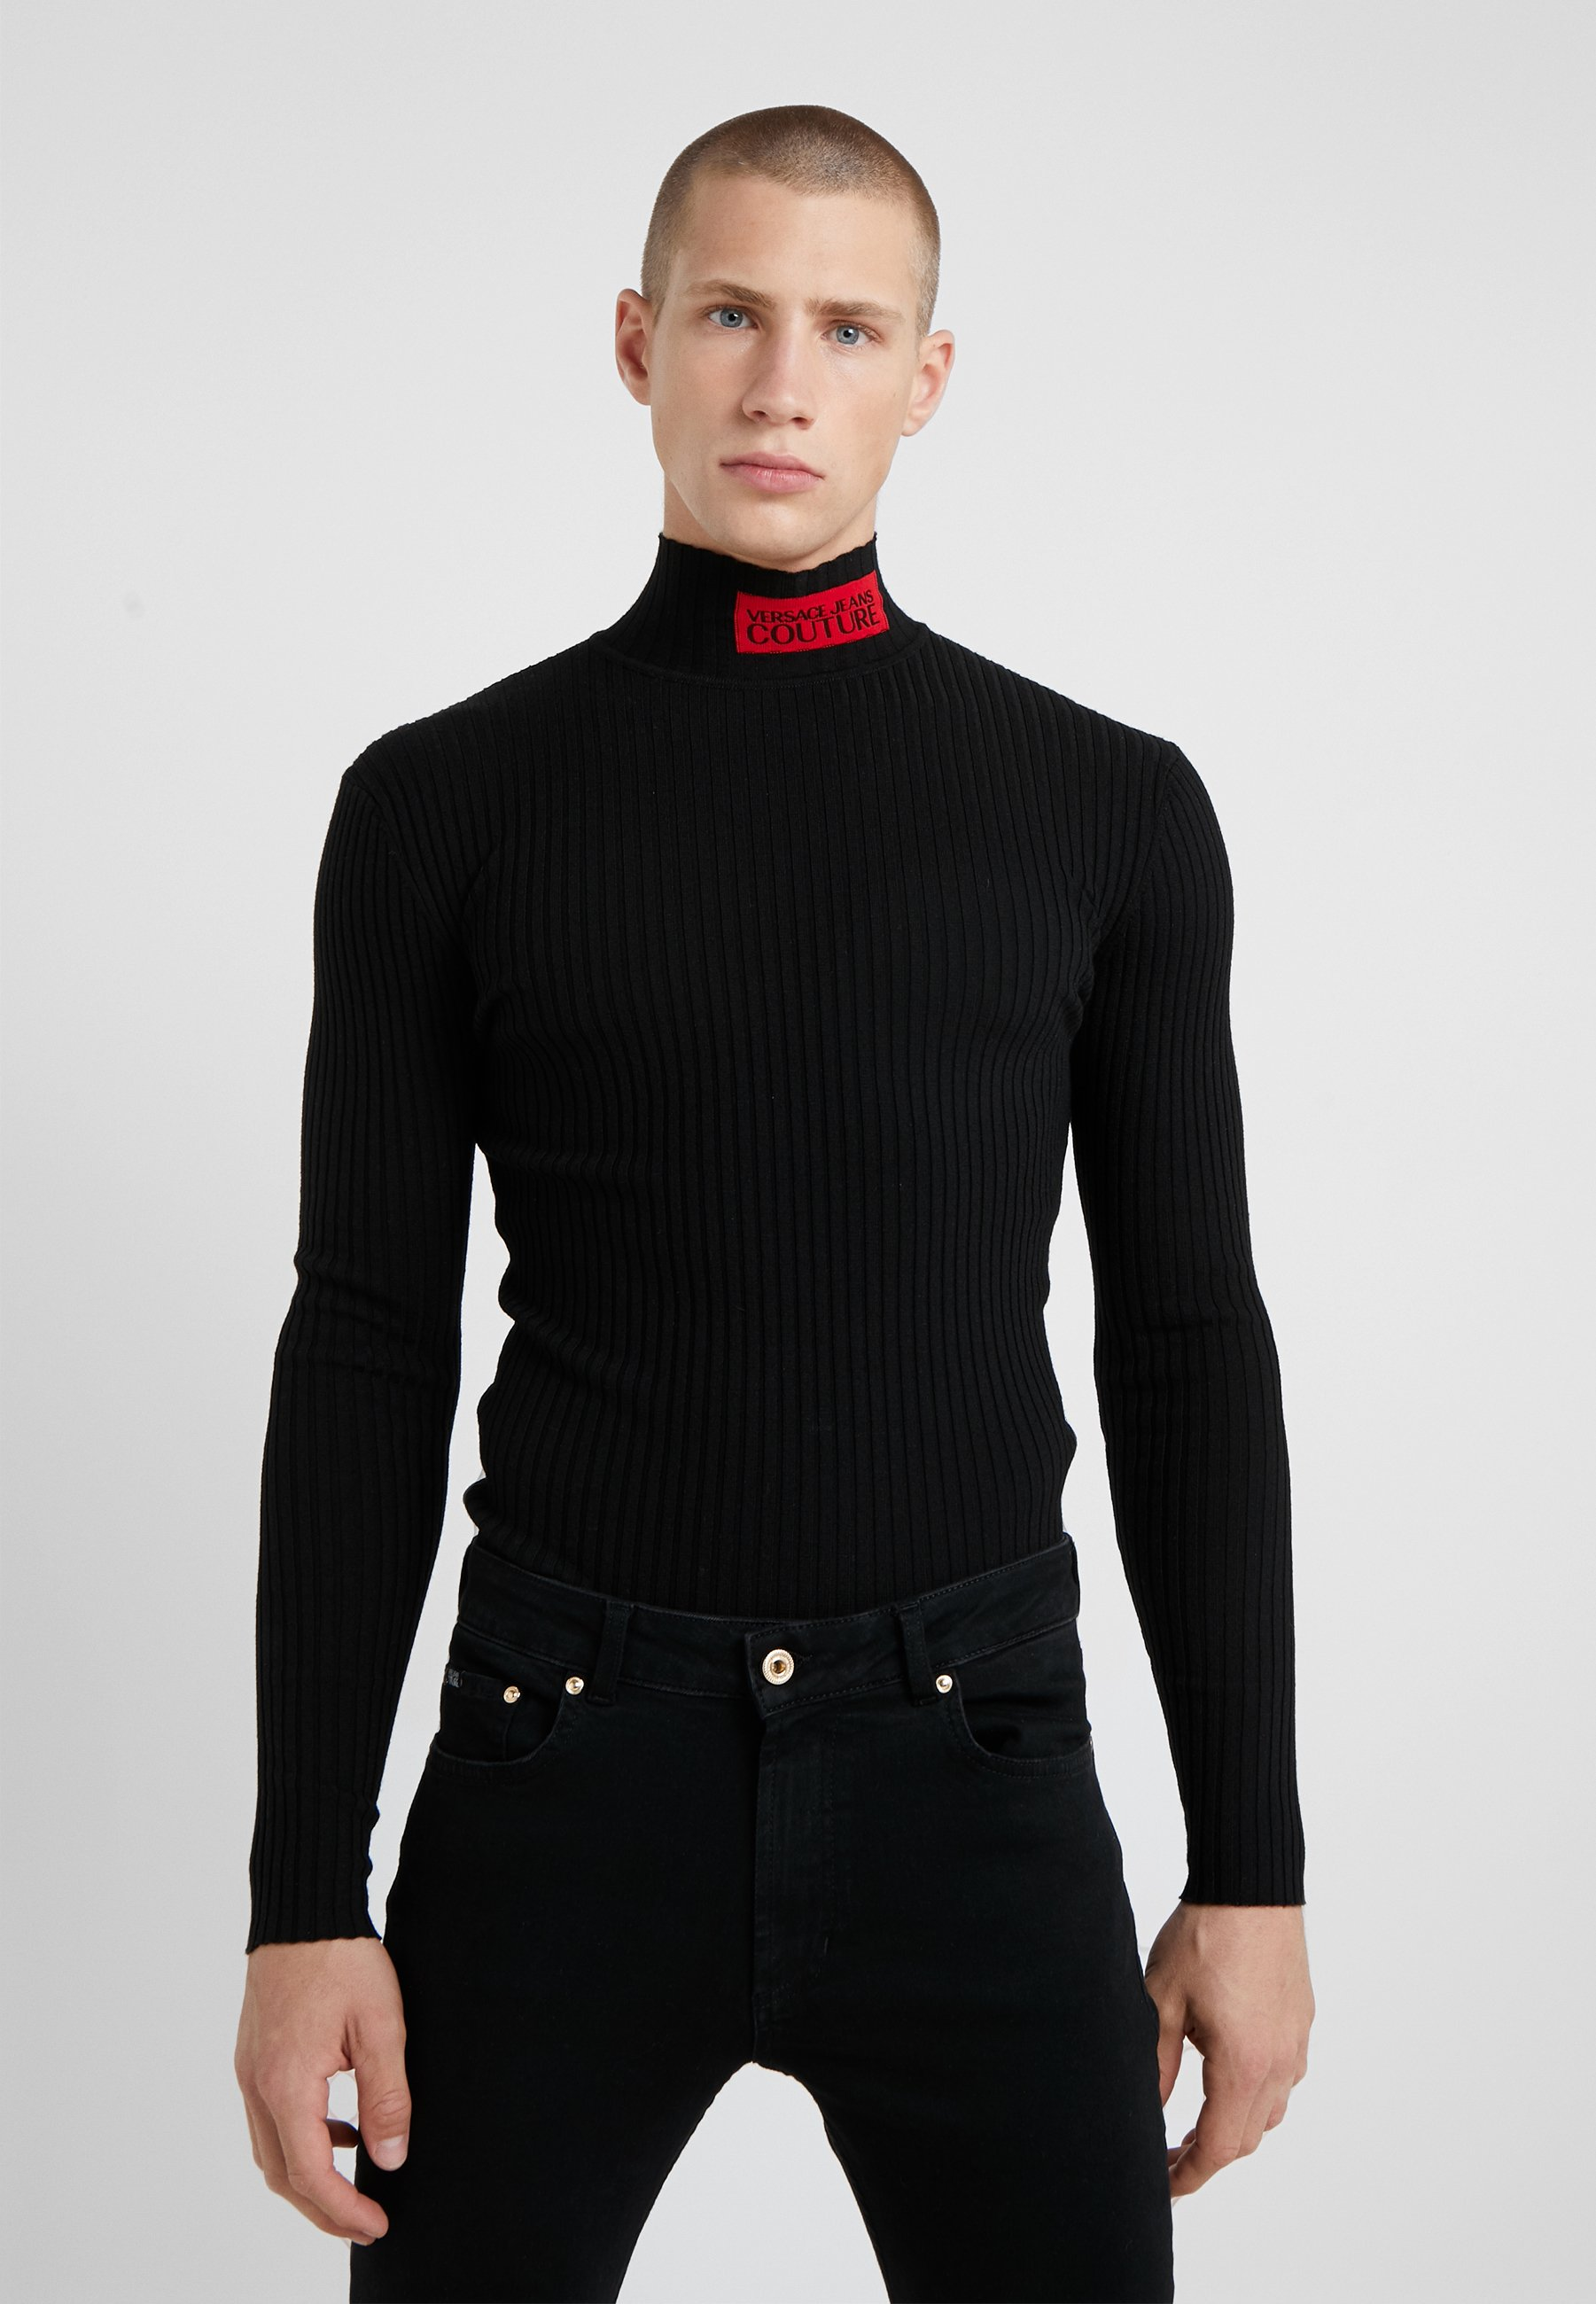 Couture MaglieriaPullover Black Versace MaglieriaPullover Versace Jeans Jeans Couture XwZOilPkuT